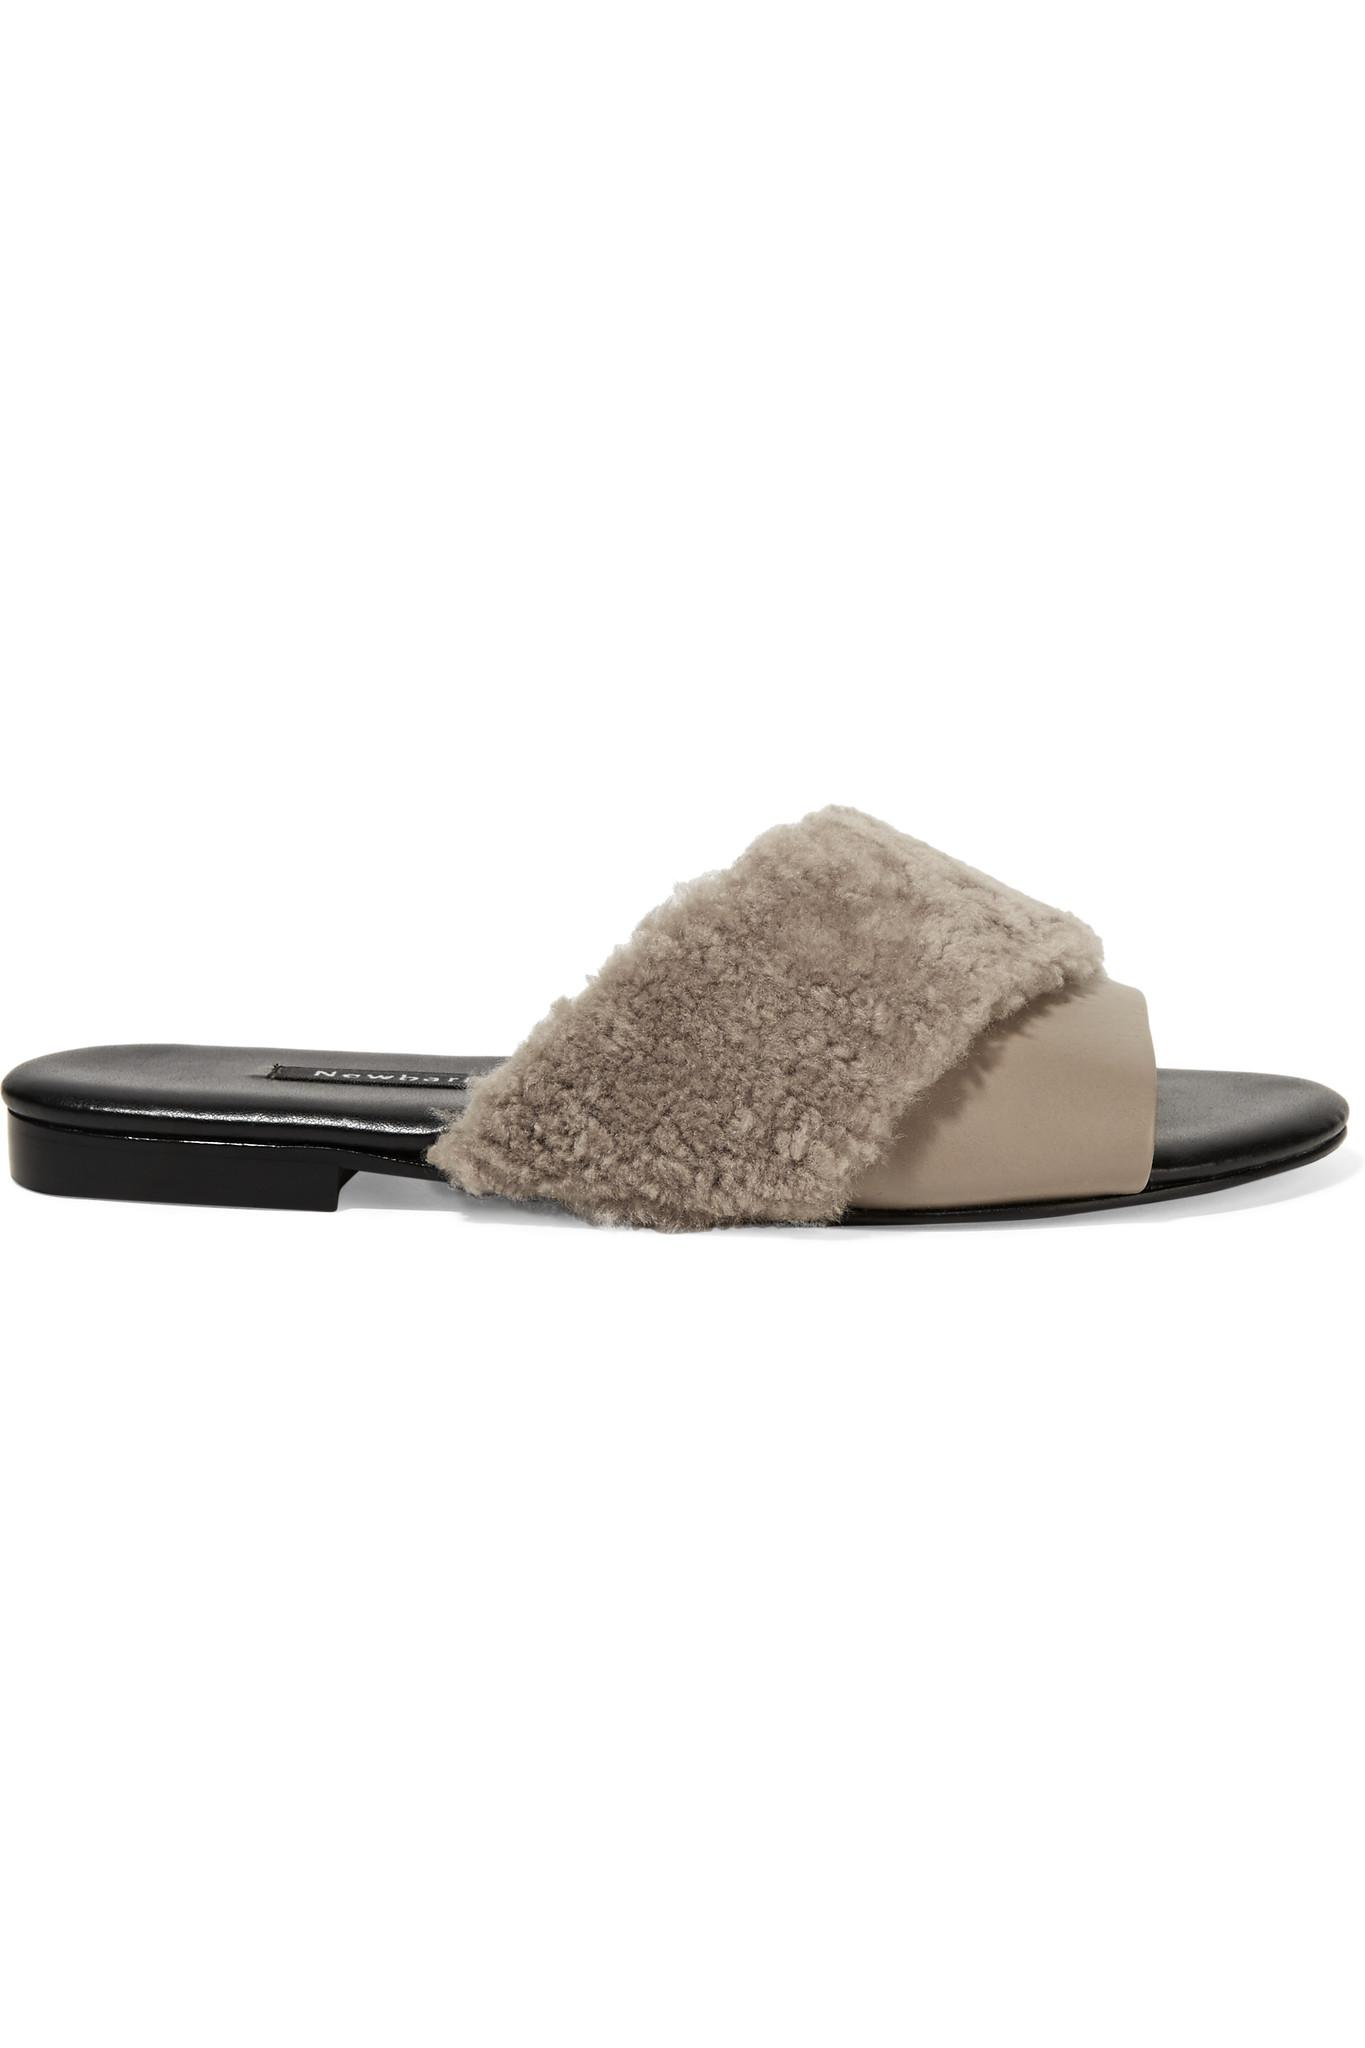 NewbarK Shearling-Trimmed Leather Mules sale new discount price purchase for sale aJfxWB3H